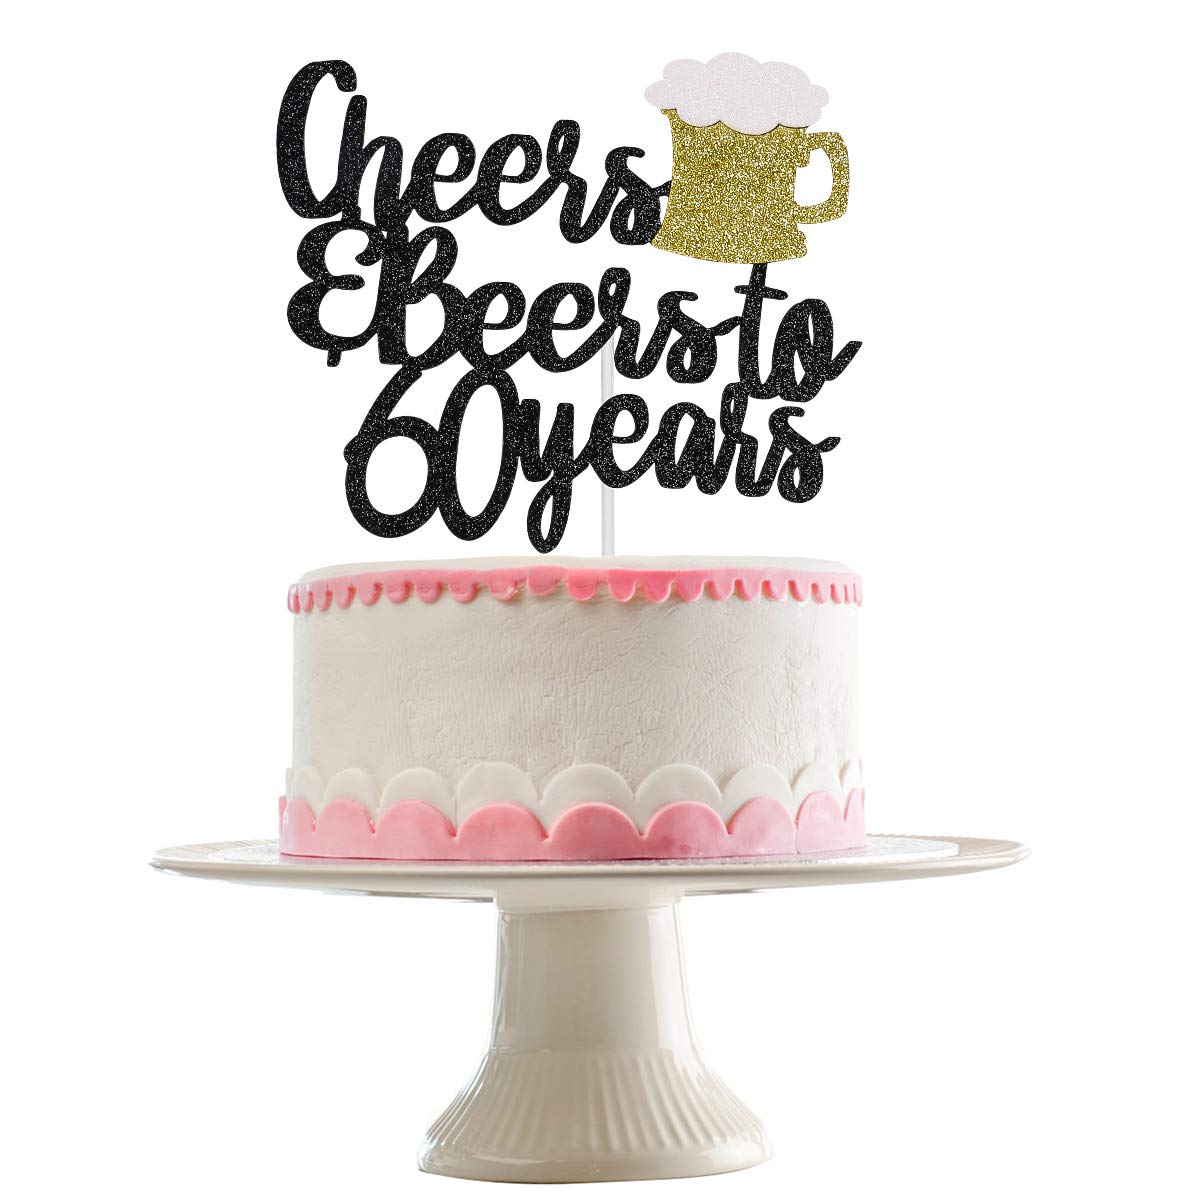 Black Glittery Cheers & Beers To 60 Years Cake Topper for 60th Birthday Party Wedding Anniversary Party Decoration Supplies